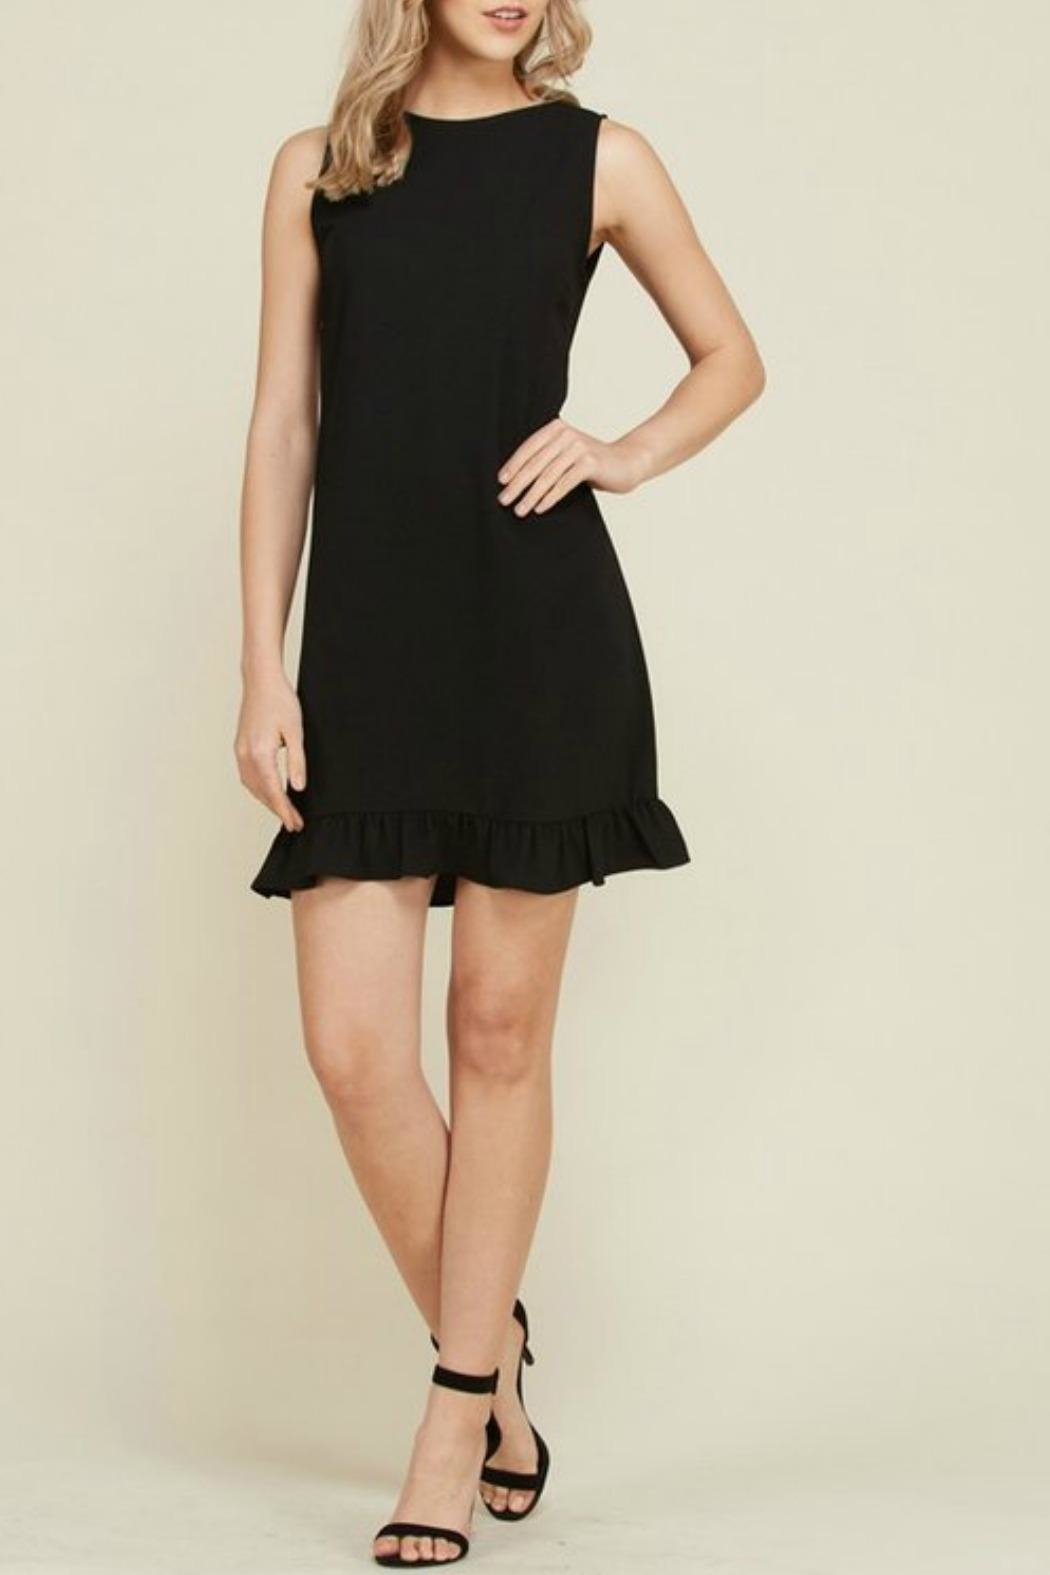 2 Hearts Trina Black Dress - Main Image